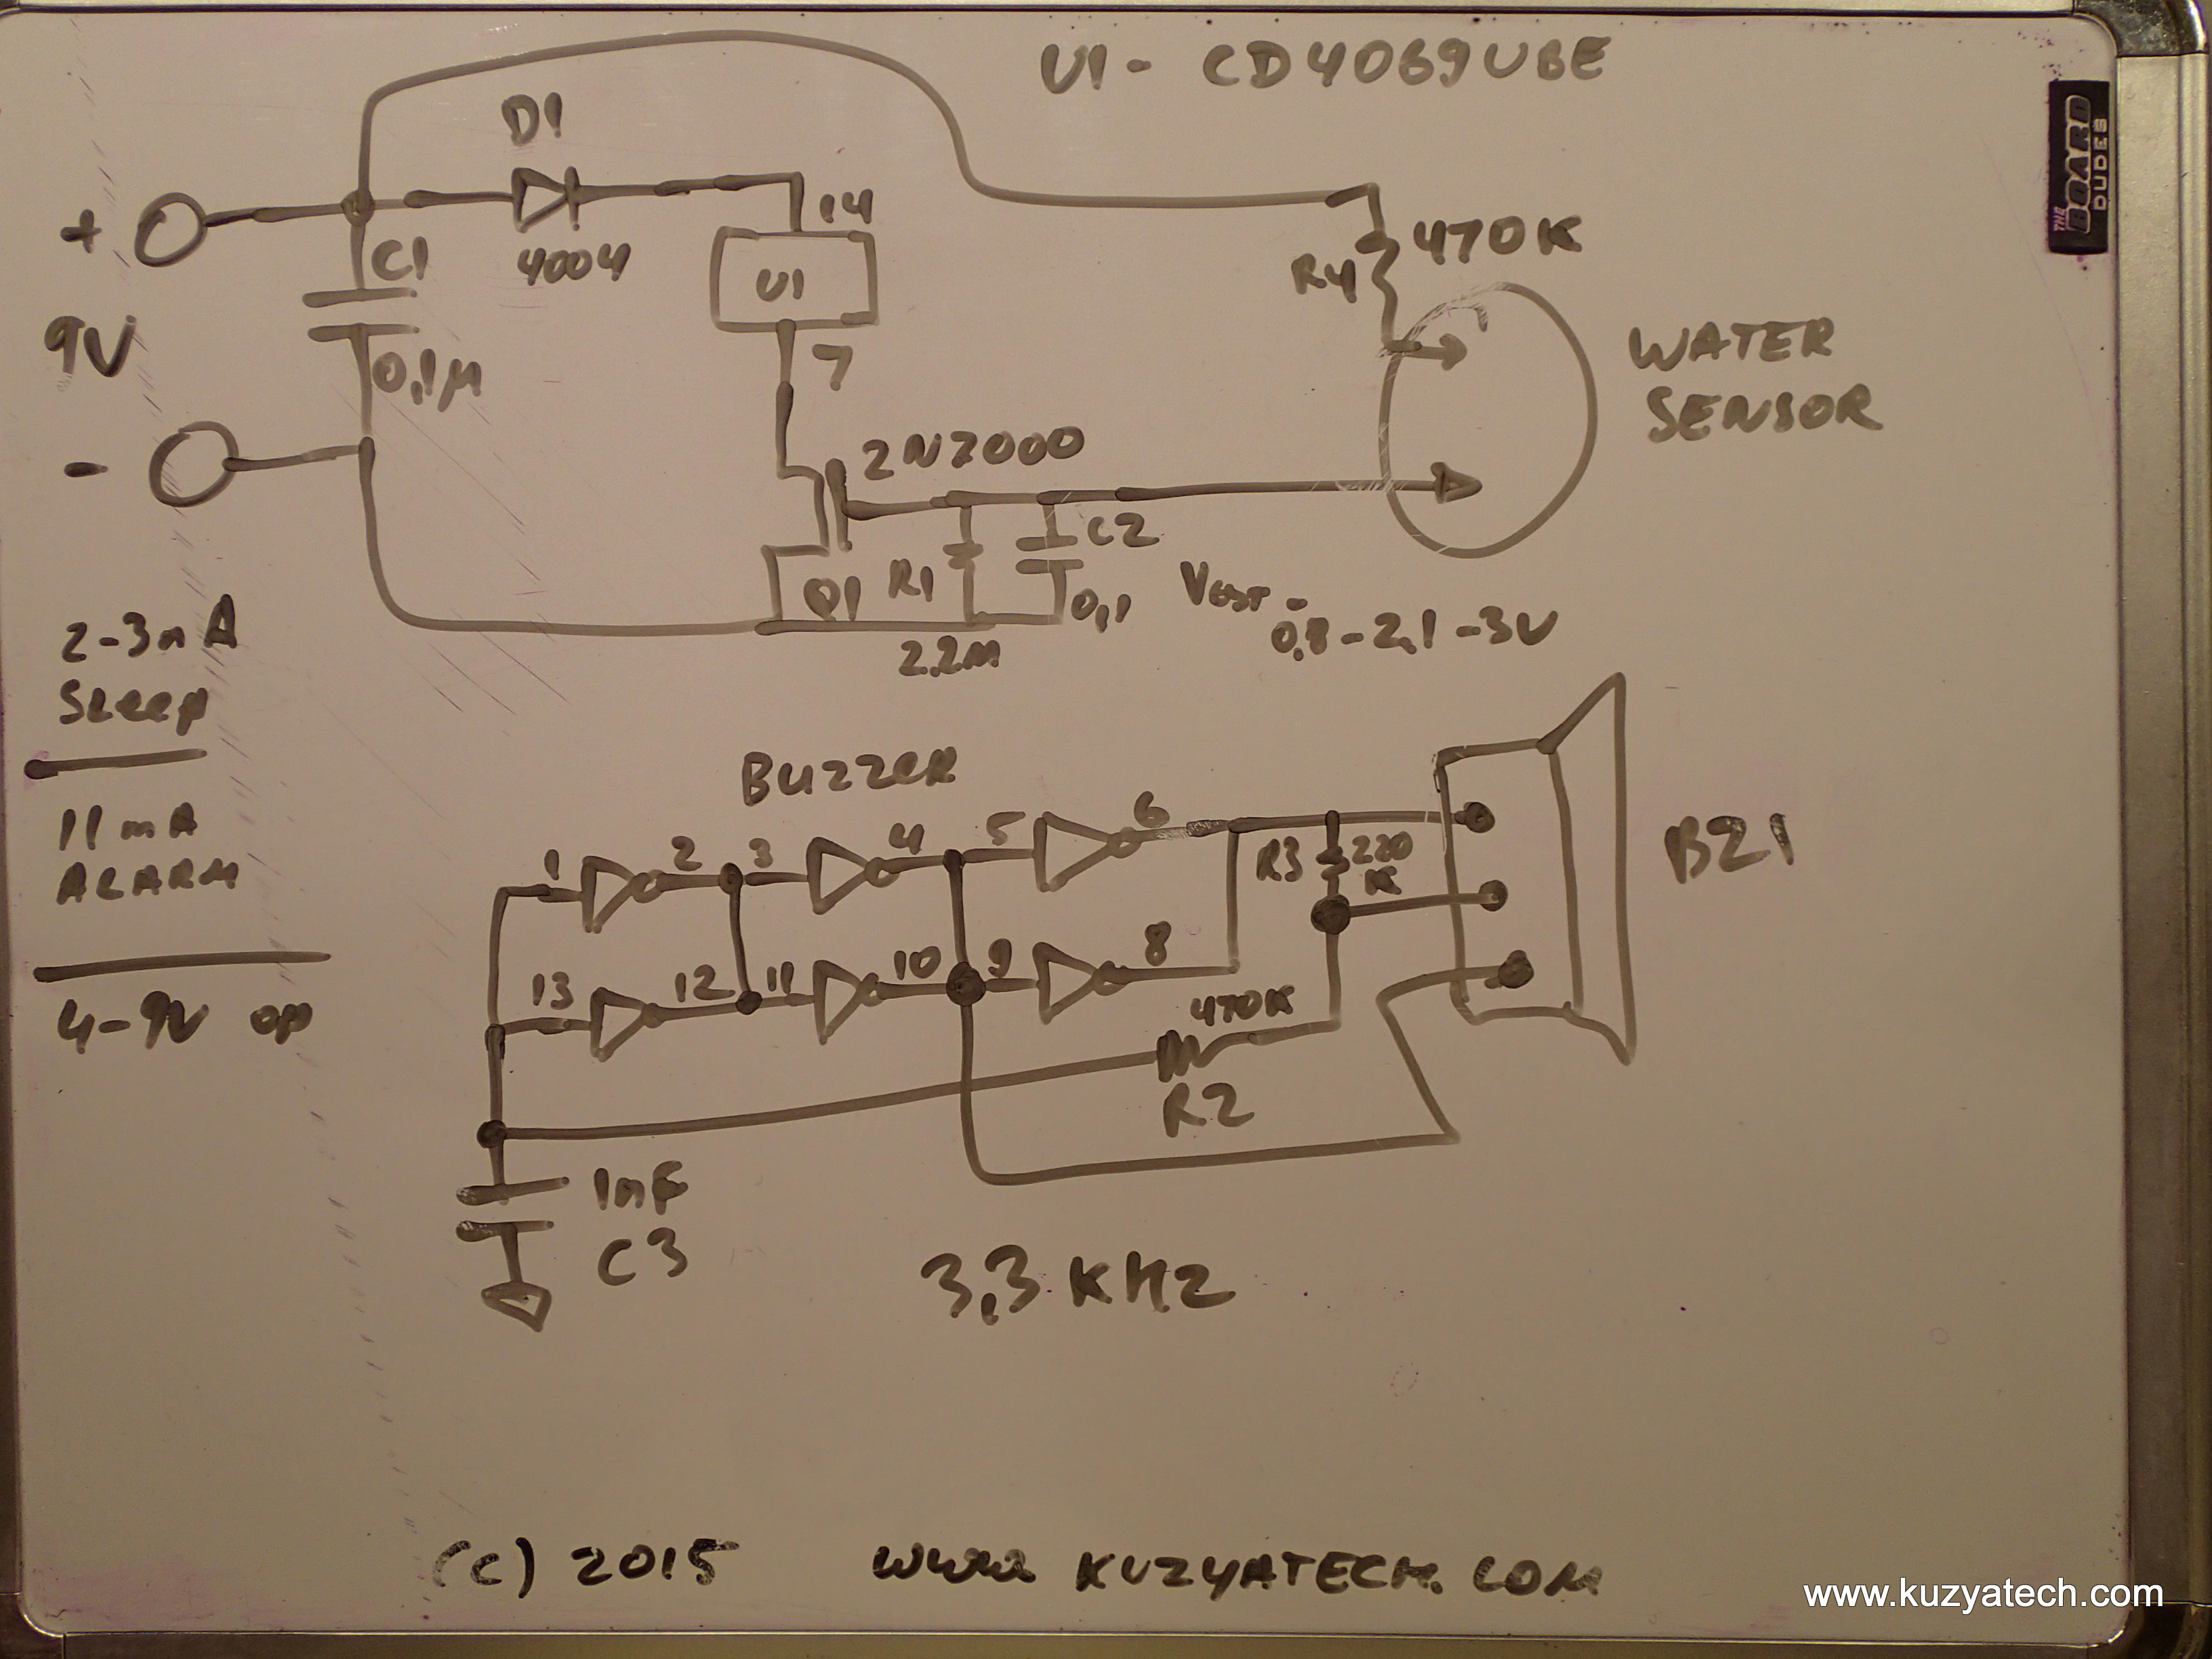 Watchdog Water Alarm Teardown Kuzyatech 9 Volt Buzzer Circuit Diagram The Driver Uses Six Inverters To Create An Oscillator With A Frequency Of Around 33khz Interestingly Enough Each Stage Is Doubled I Am